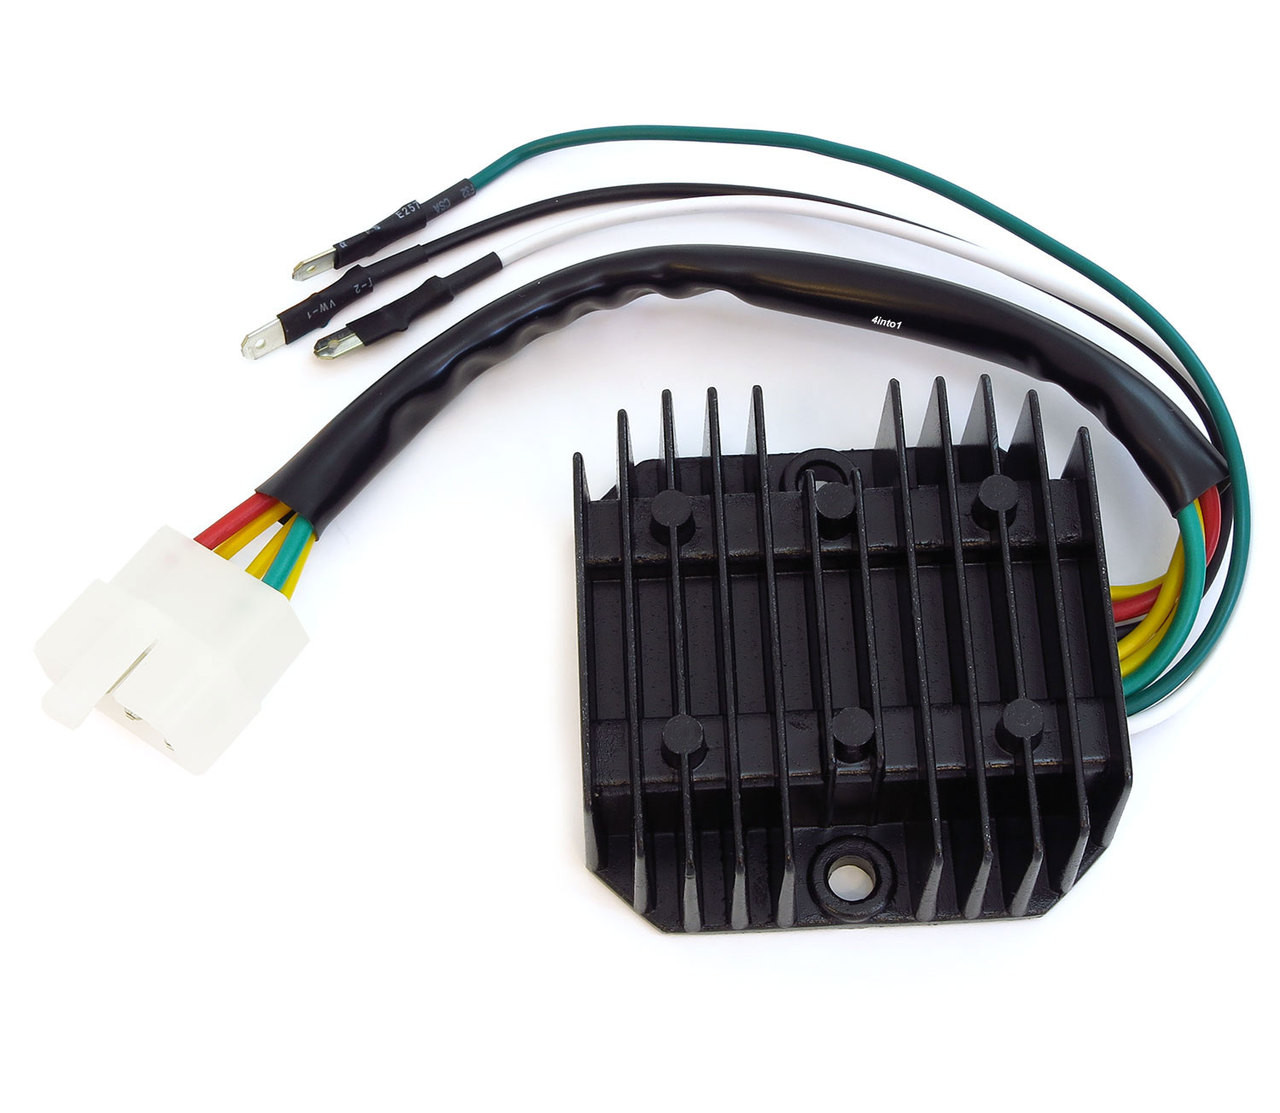 wiring harness cb 500 wiring diagram centre regulator rectifier honda cb350f cb400f cb500 cb550 cb750 wiring harness